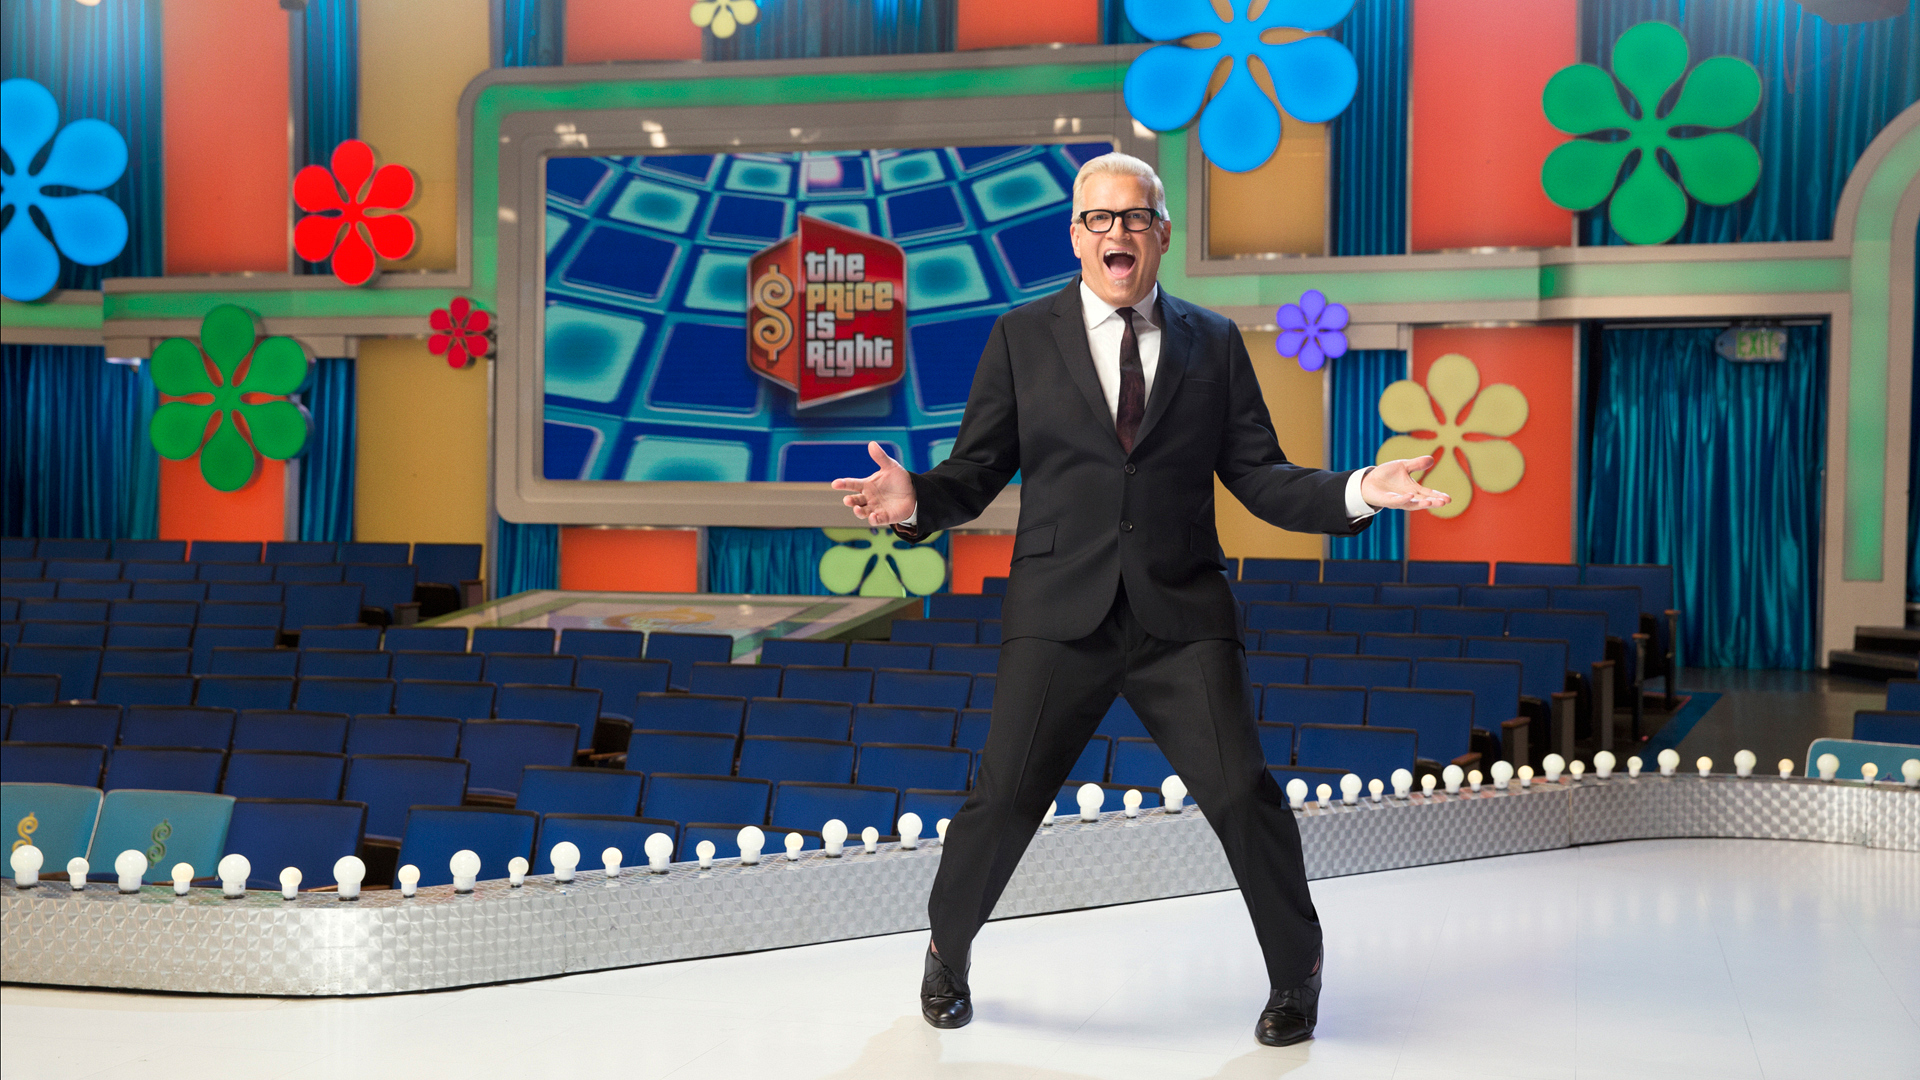 The price is always right, especially after 45 seasons